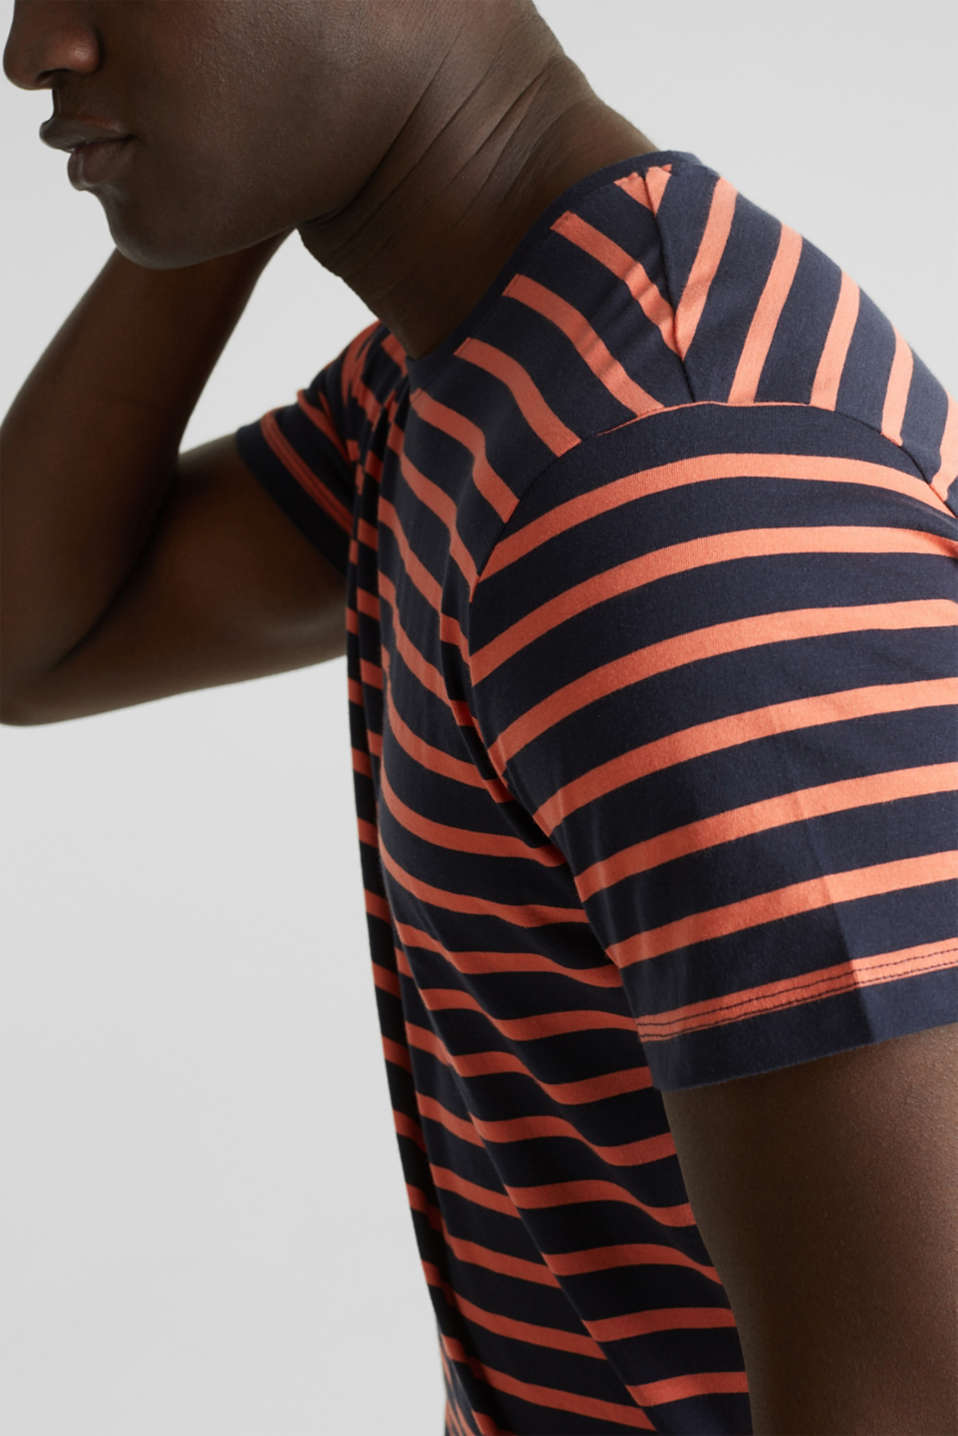 Striped jersey top, cotton, NAVY 3, detail image number 1